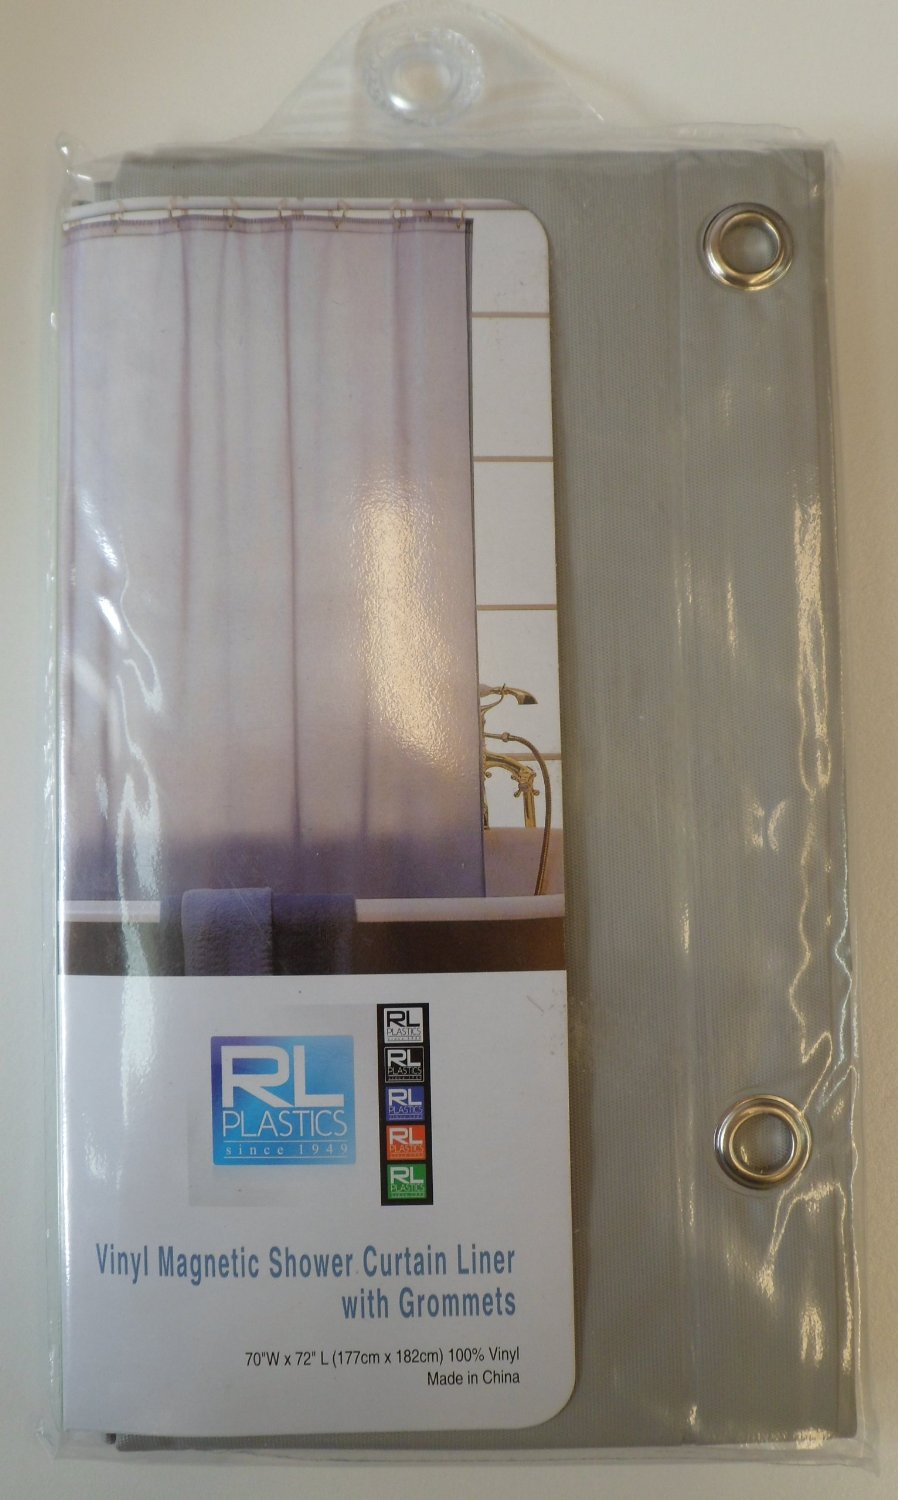 "RL Plastics 100% Vinyl Grey Magnetic Shower Curtain Liner with Grommets, Mildew and Water Resistant Standard Size 70"" X 72"""